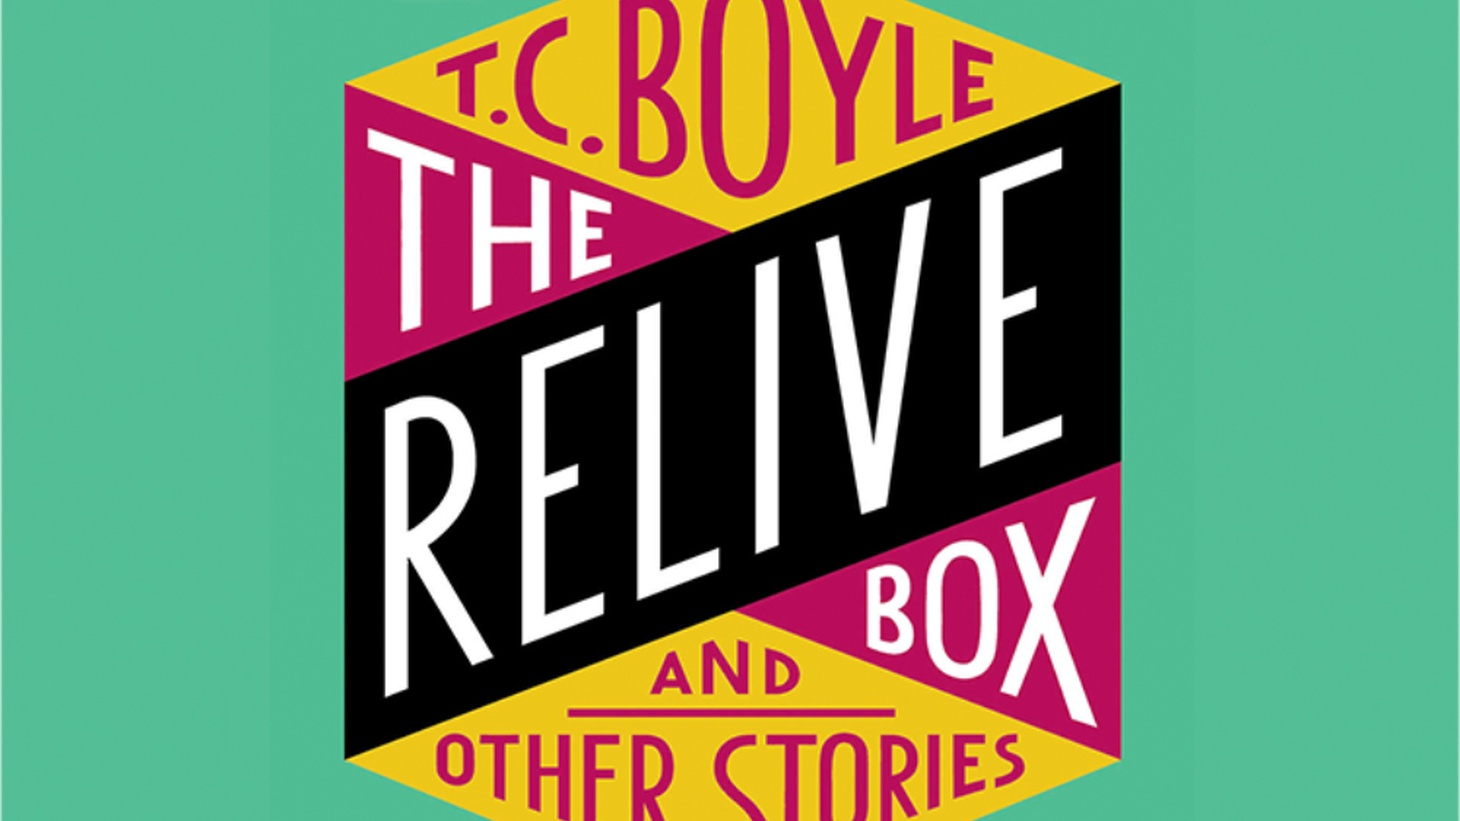 T.C. Boyle's short stories regularly appear in magazines such as The New Yorker, Harper's, Esquire, The Atlantic Monthly and Playboy, as well as on the radio show, Selected Shorts.